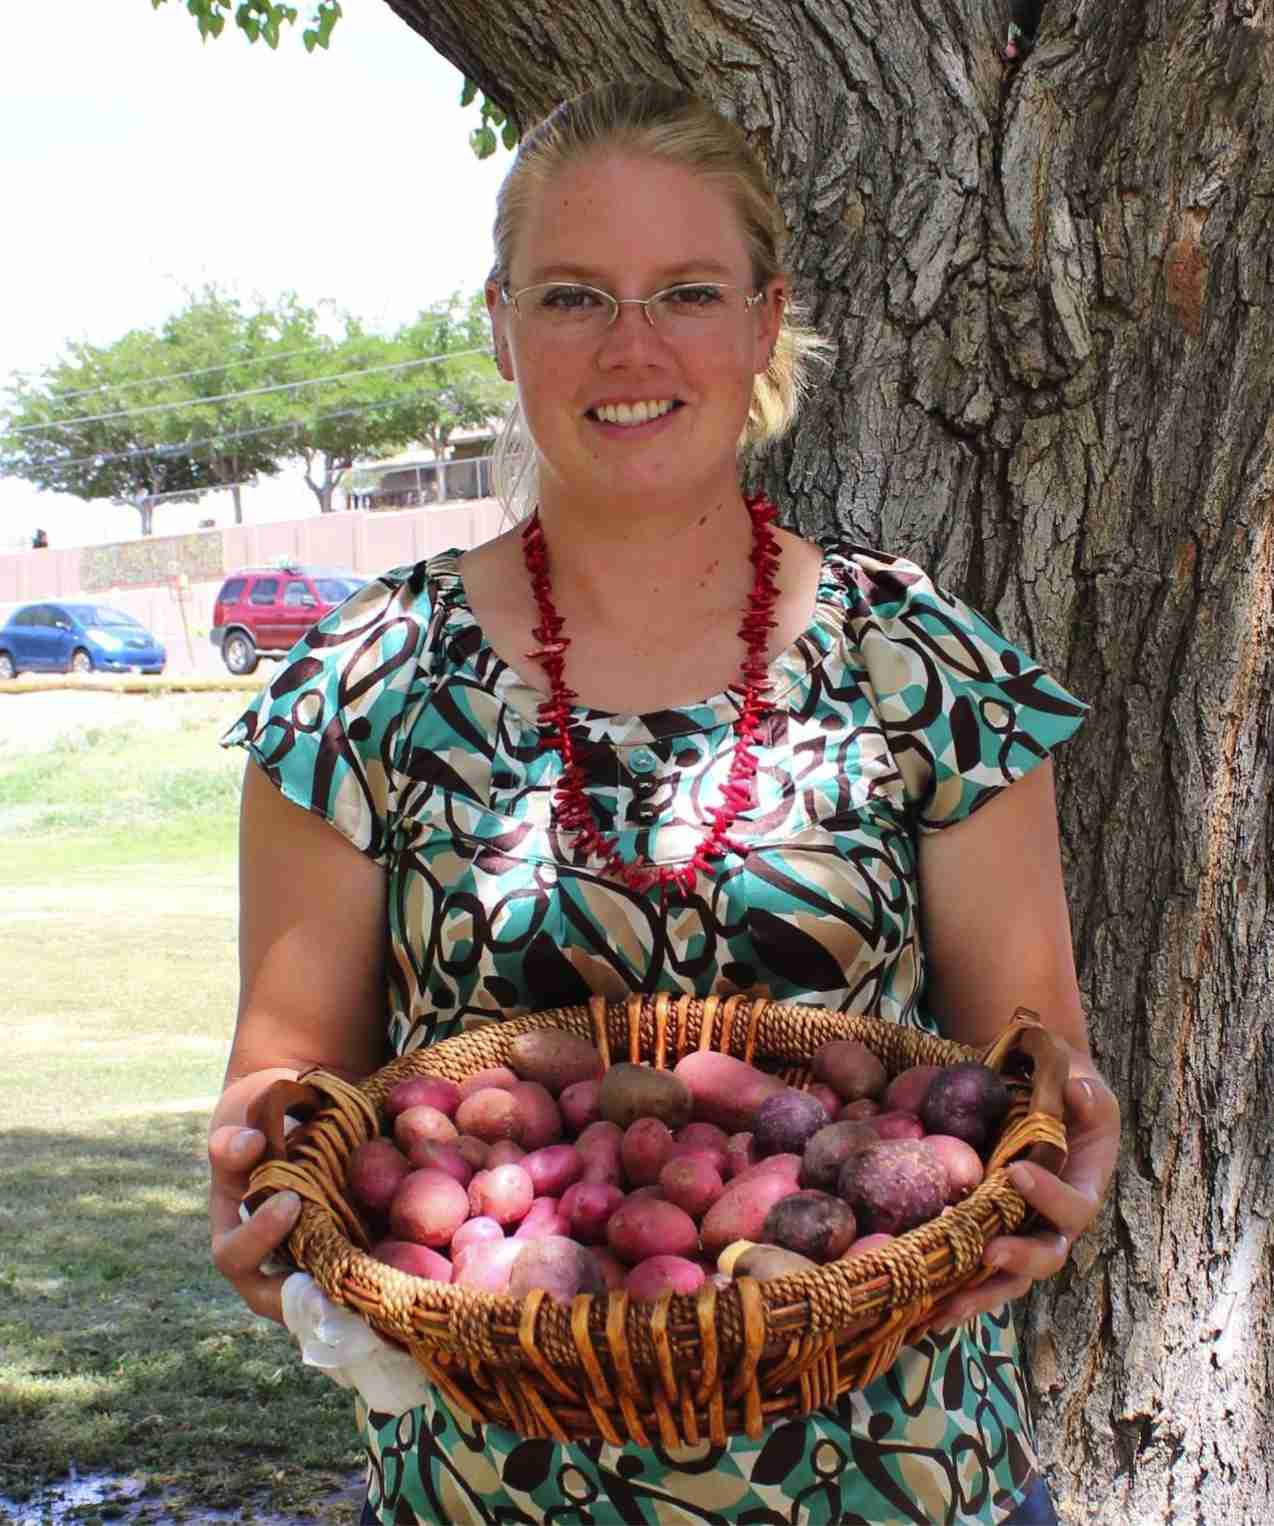 monticello-grown potatoes from South 40 Farm